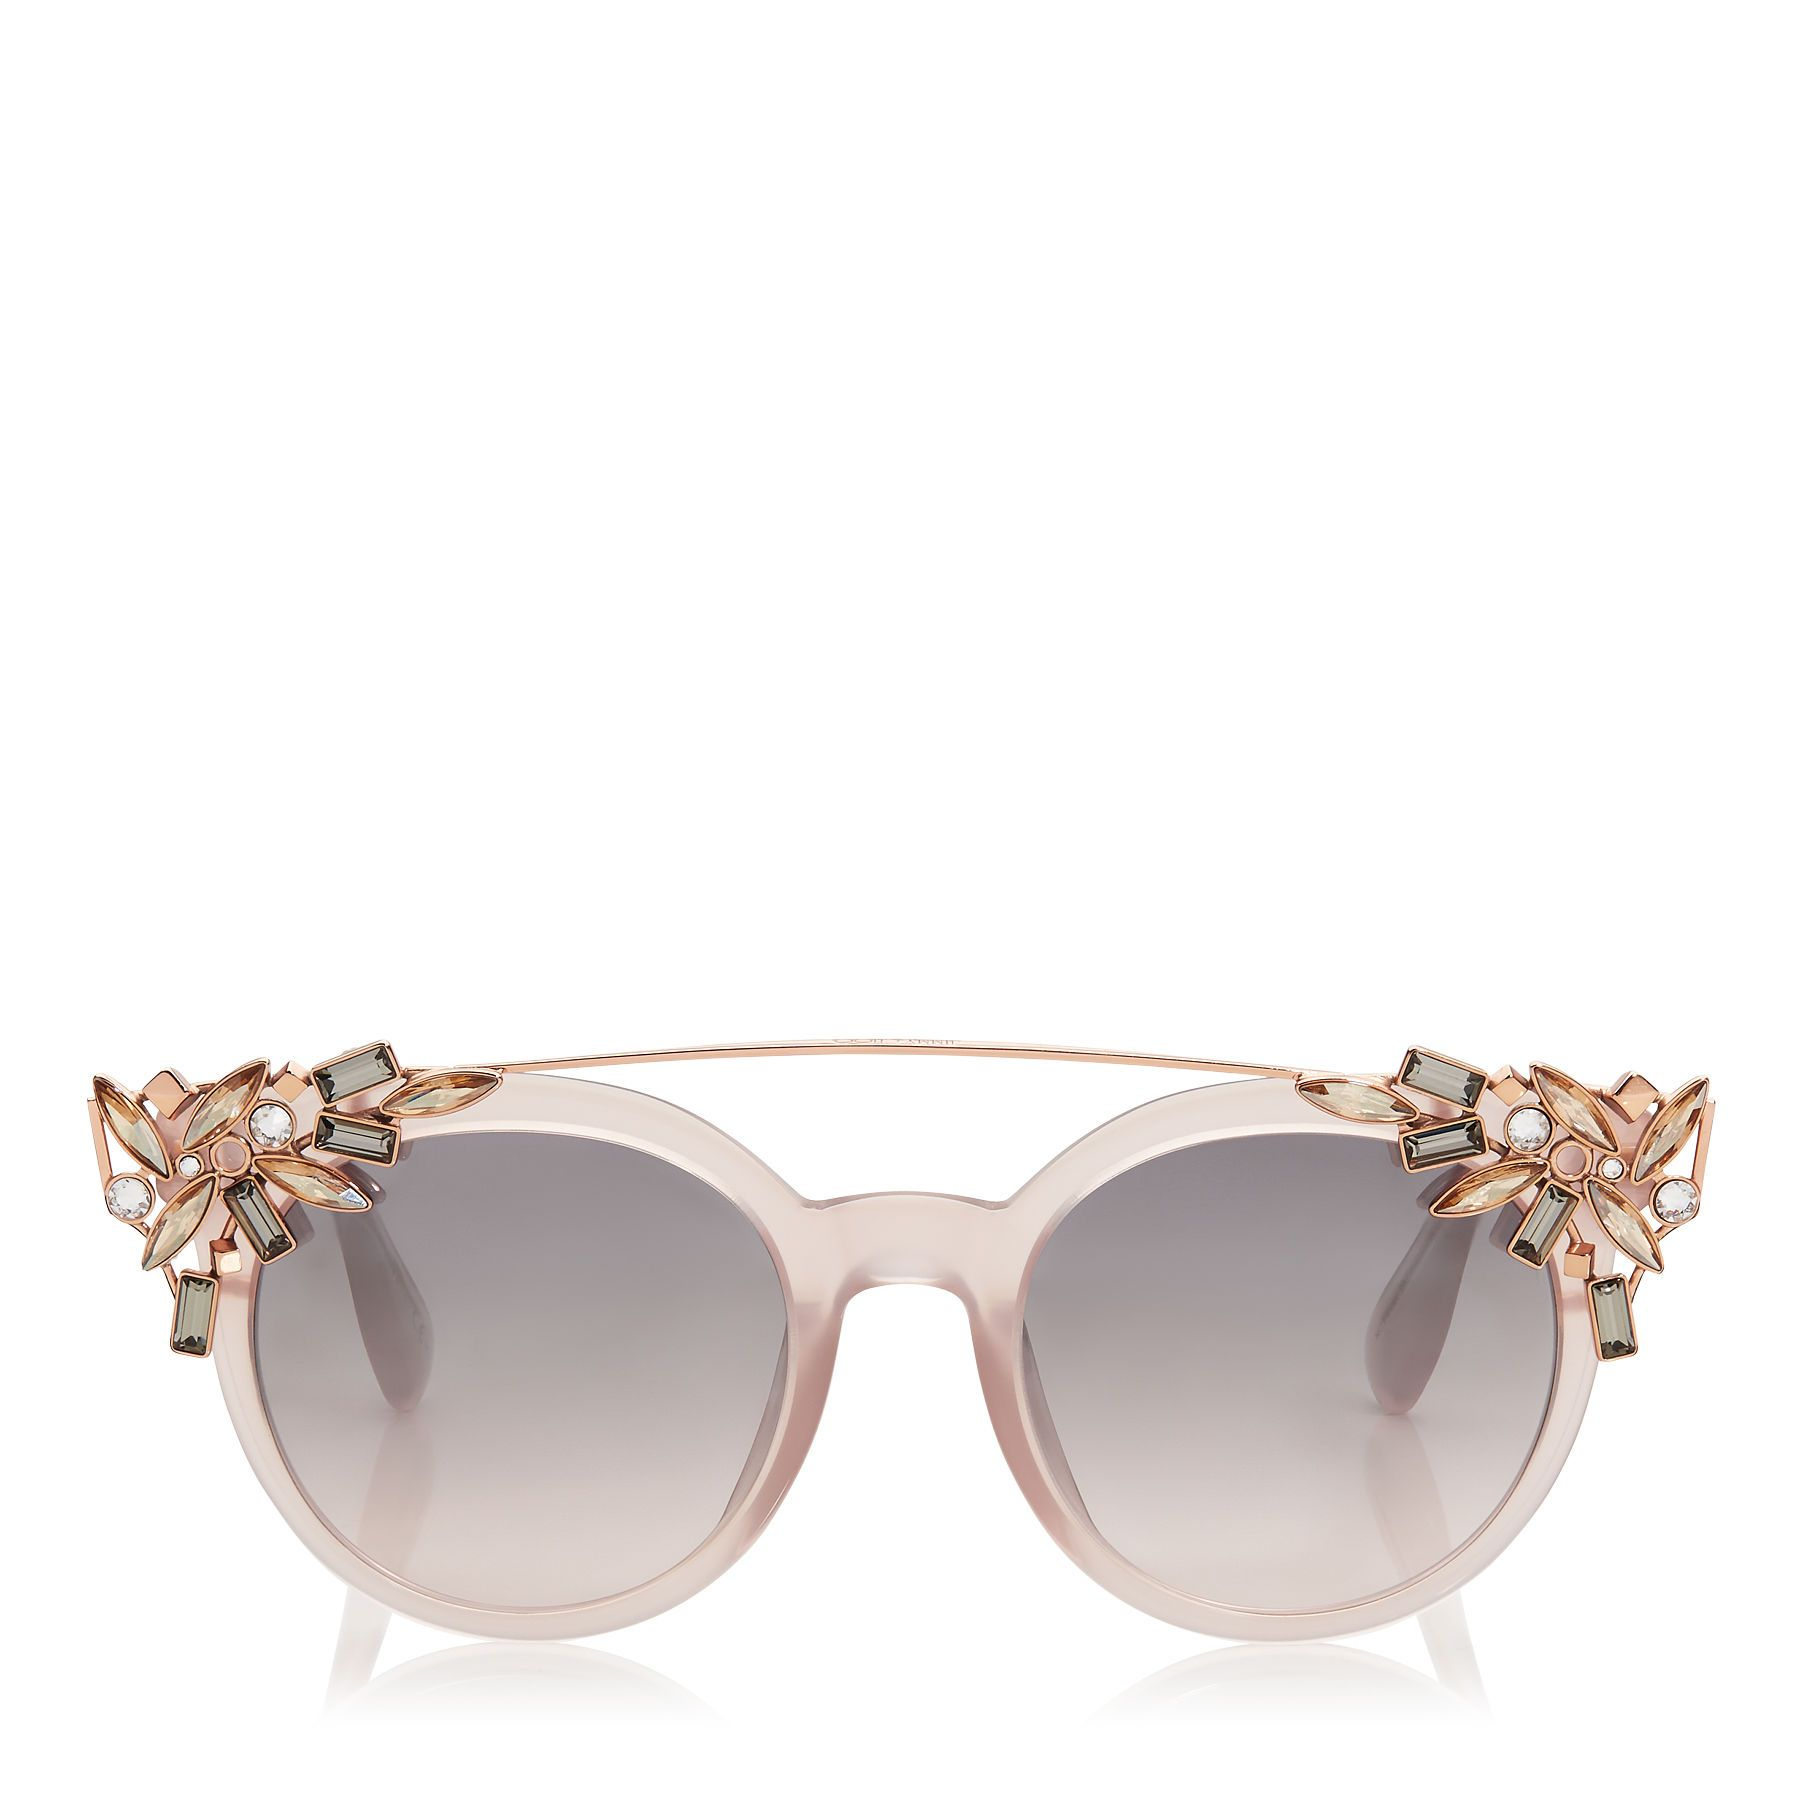 Jimmy Choo, VIVY. Pink Round Framed Sunglasses with Detachable Jewel Clip On 6b1fcb2c97